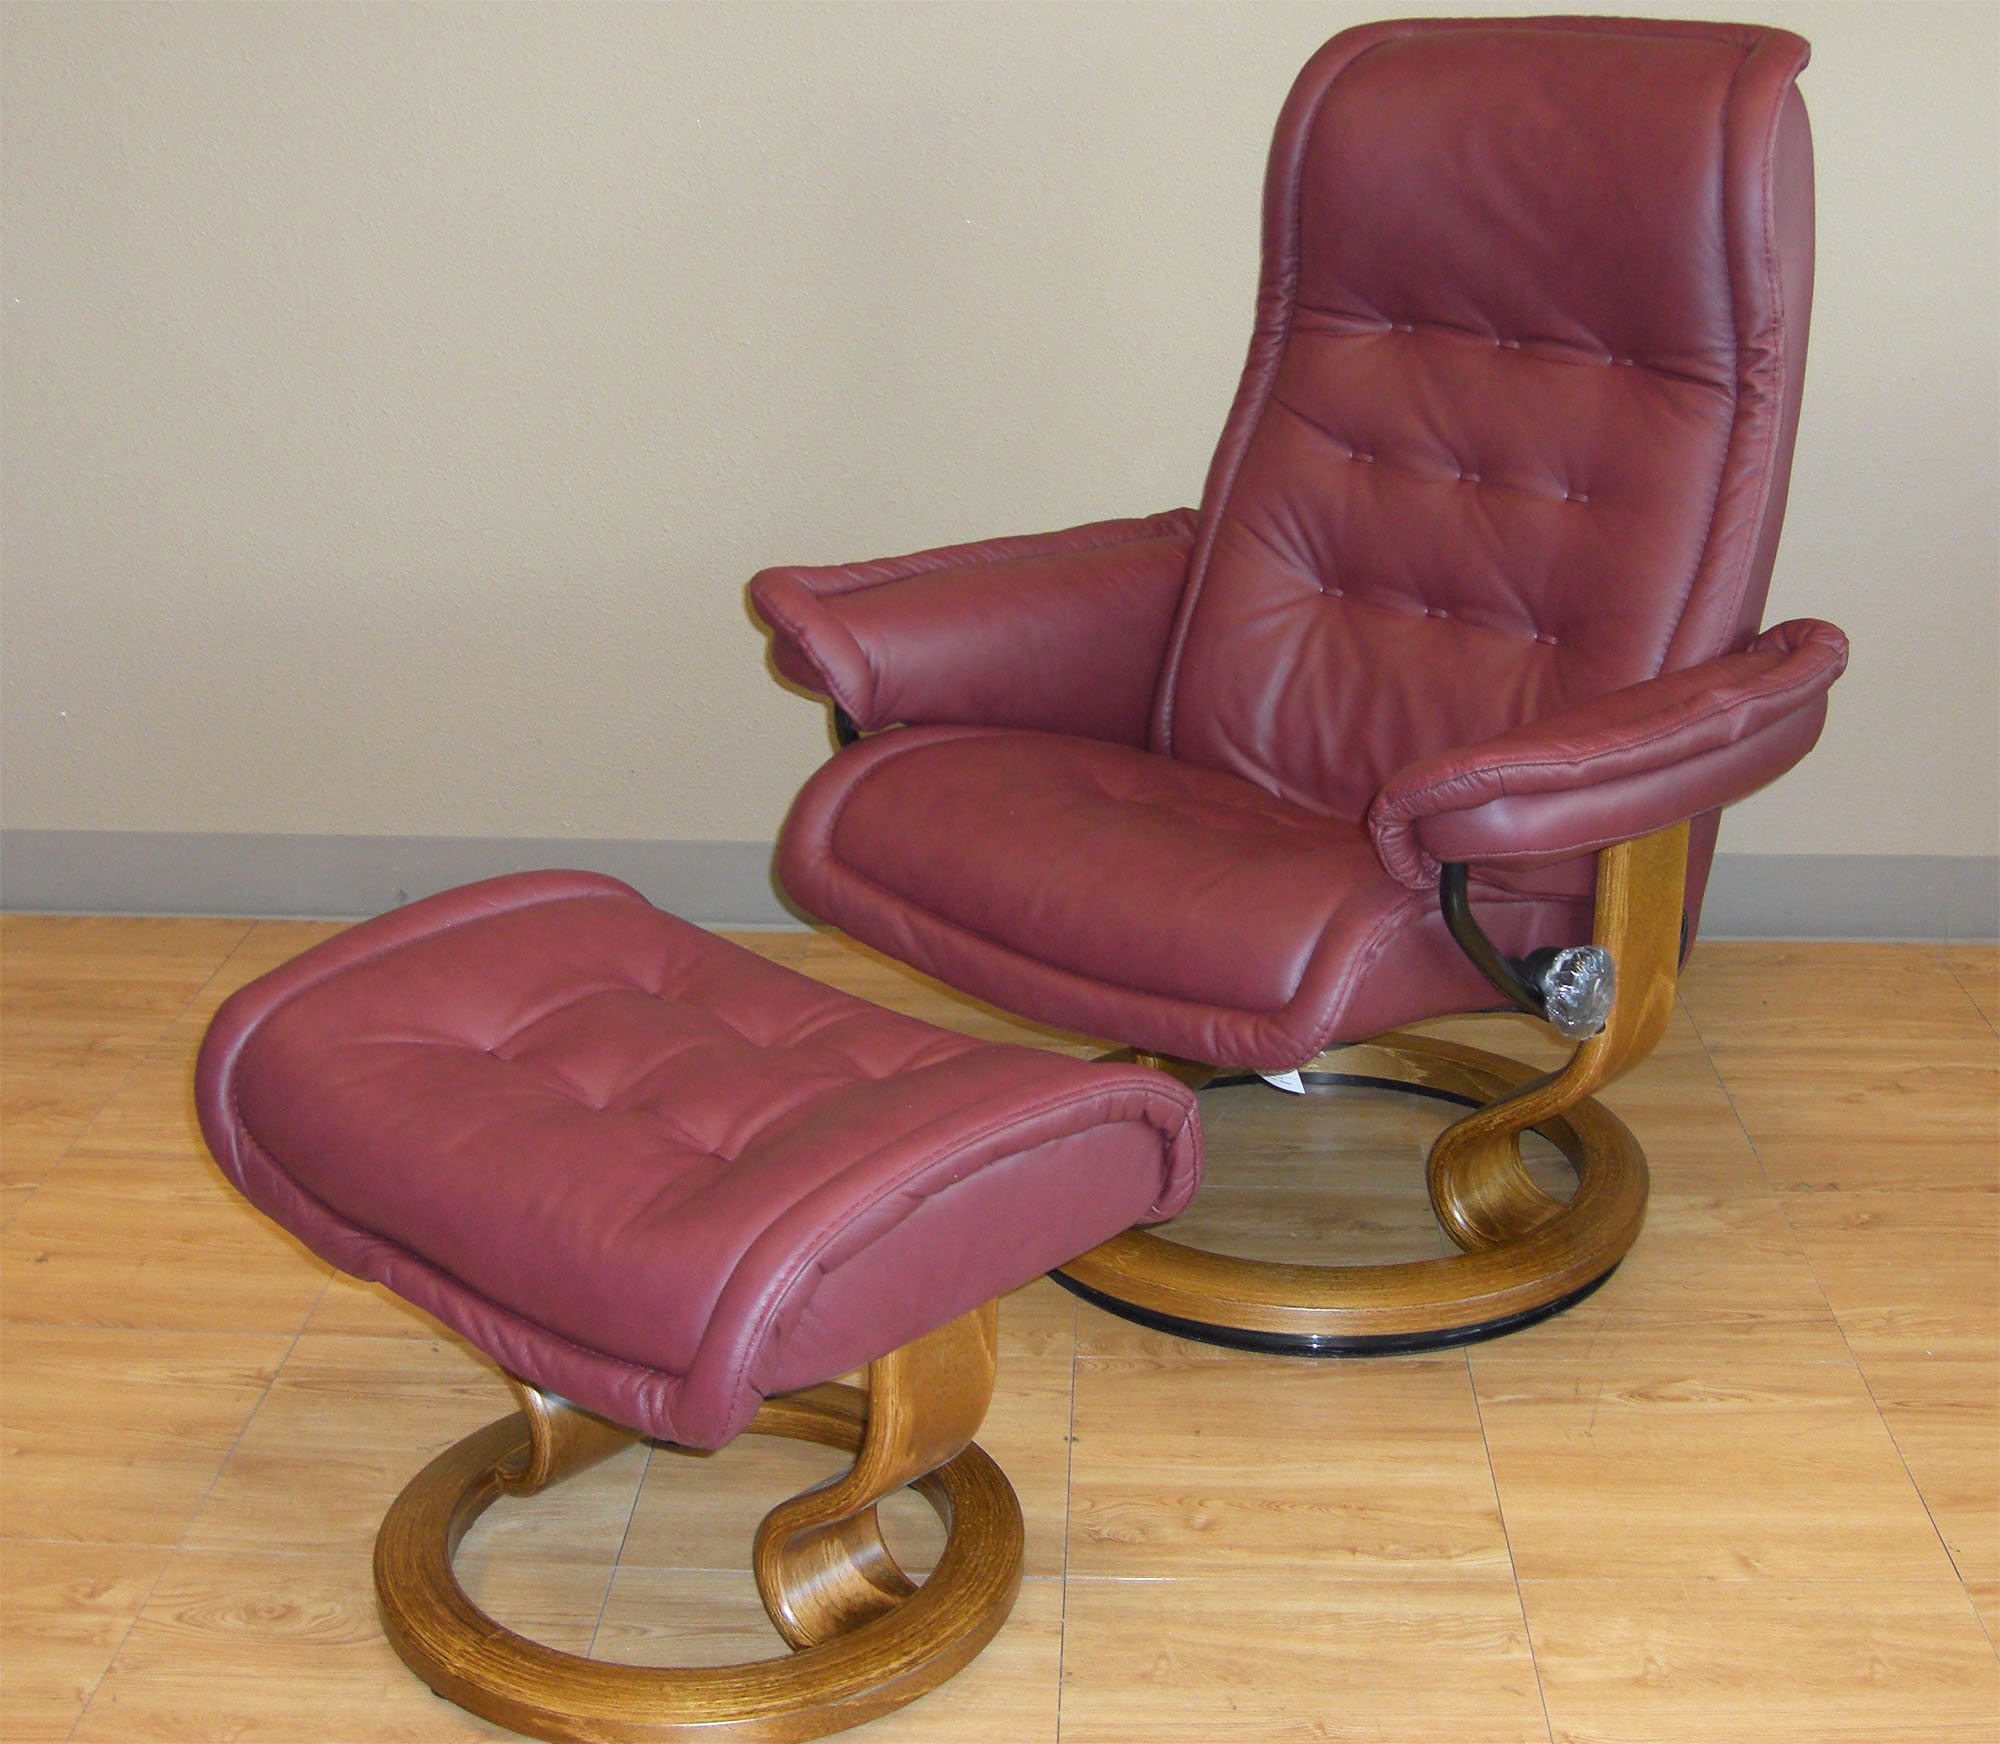 Recliners On Sale Canada Ekornes Stressless Royal Recliner Chair Lounger Ekornes